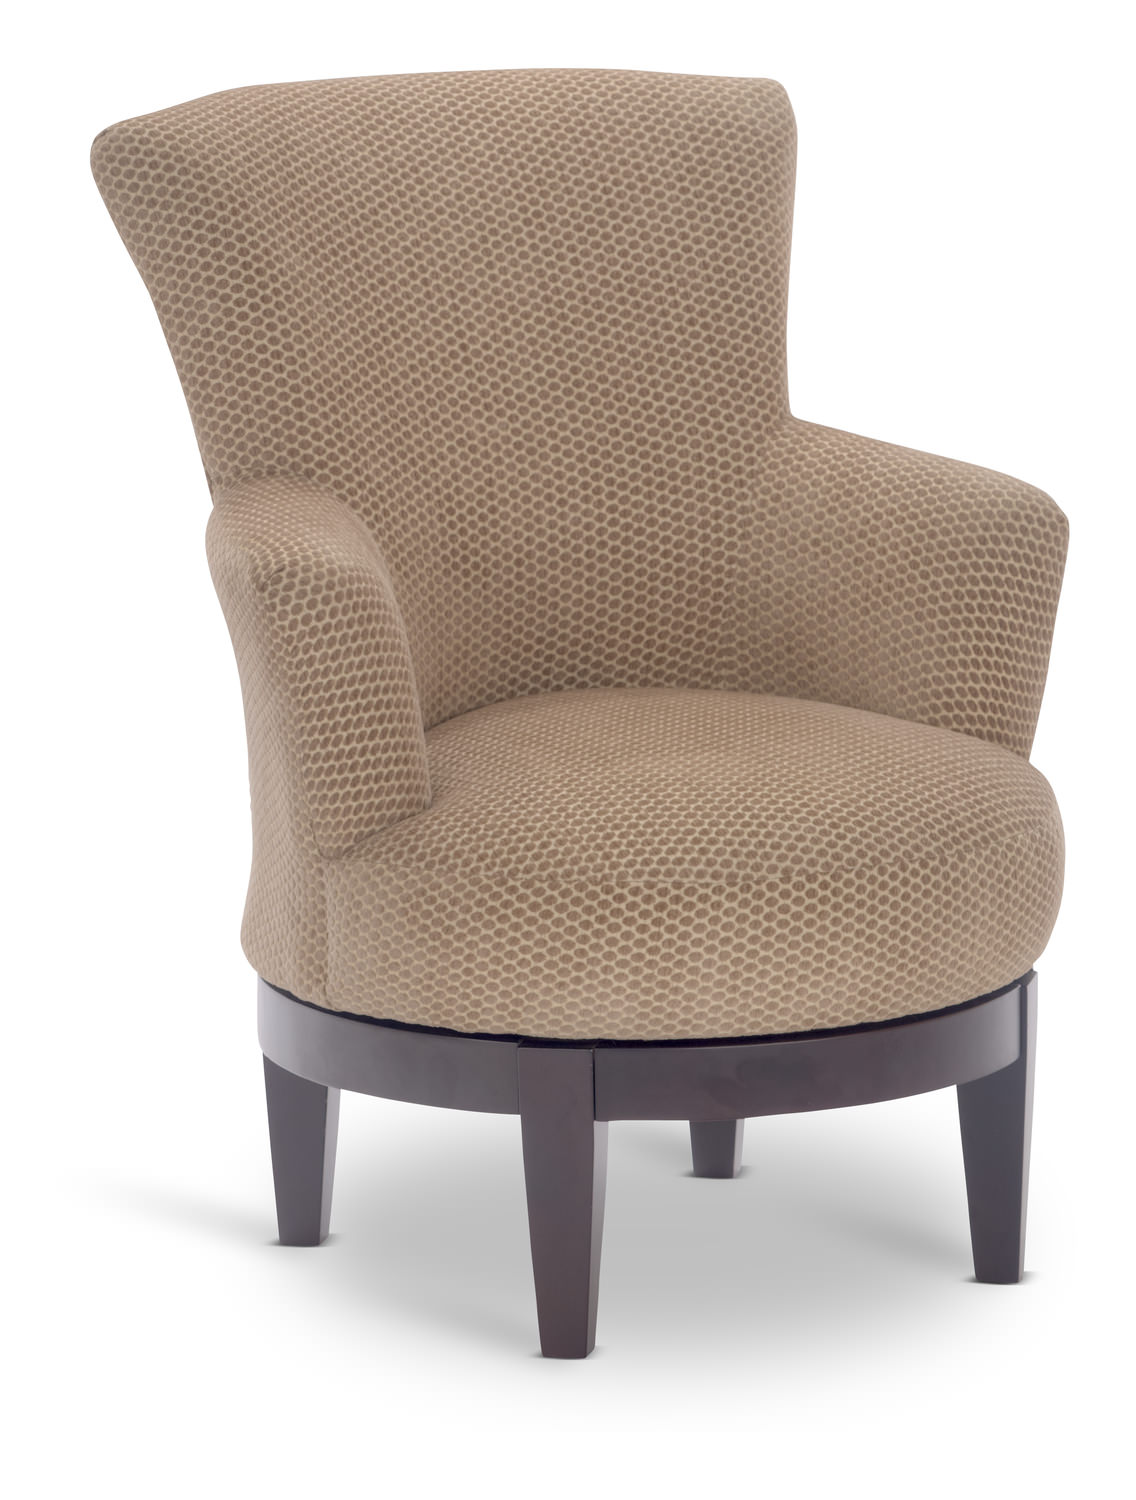 Justine Swivel Chair Hom Furniture